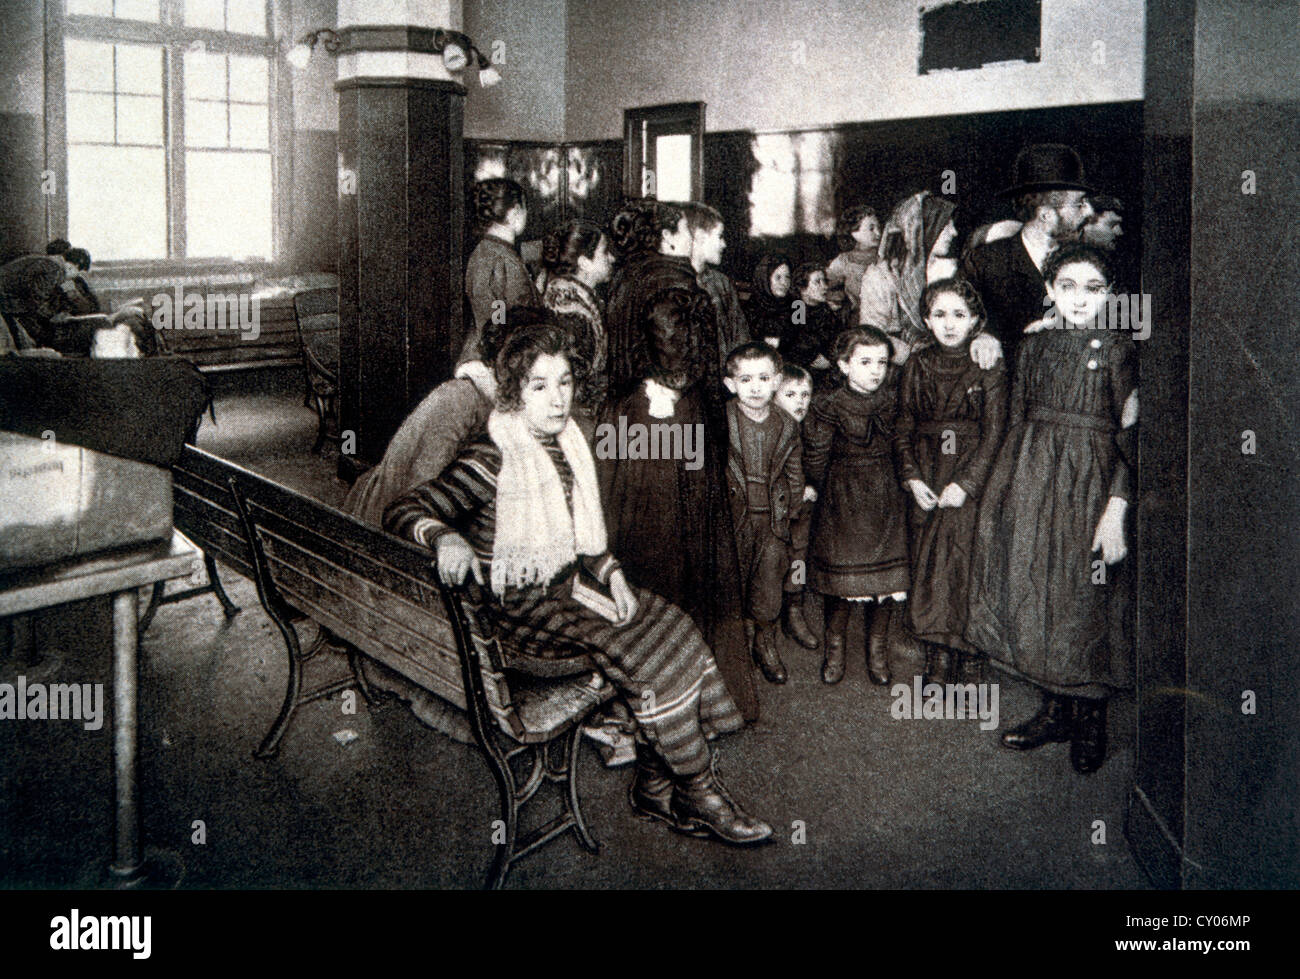 Group of Emigrants Waiting in the Detention Pen after Passing their Entrance Exam, Ellis Island, New York, USA, - Stock Image